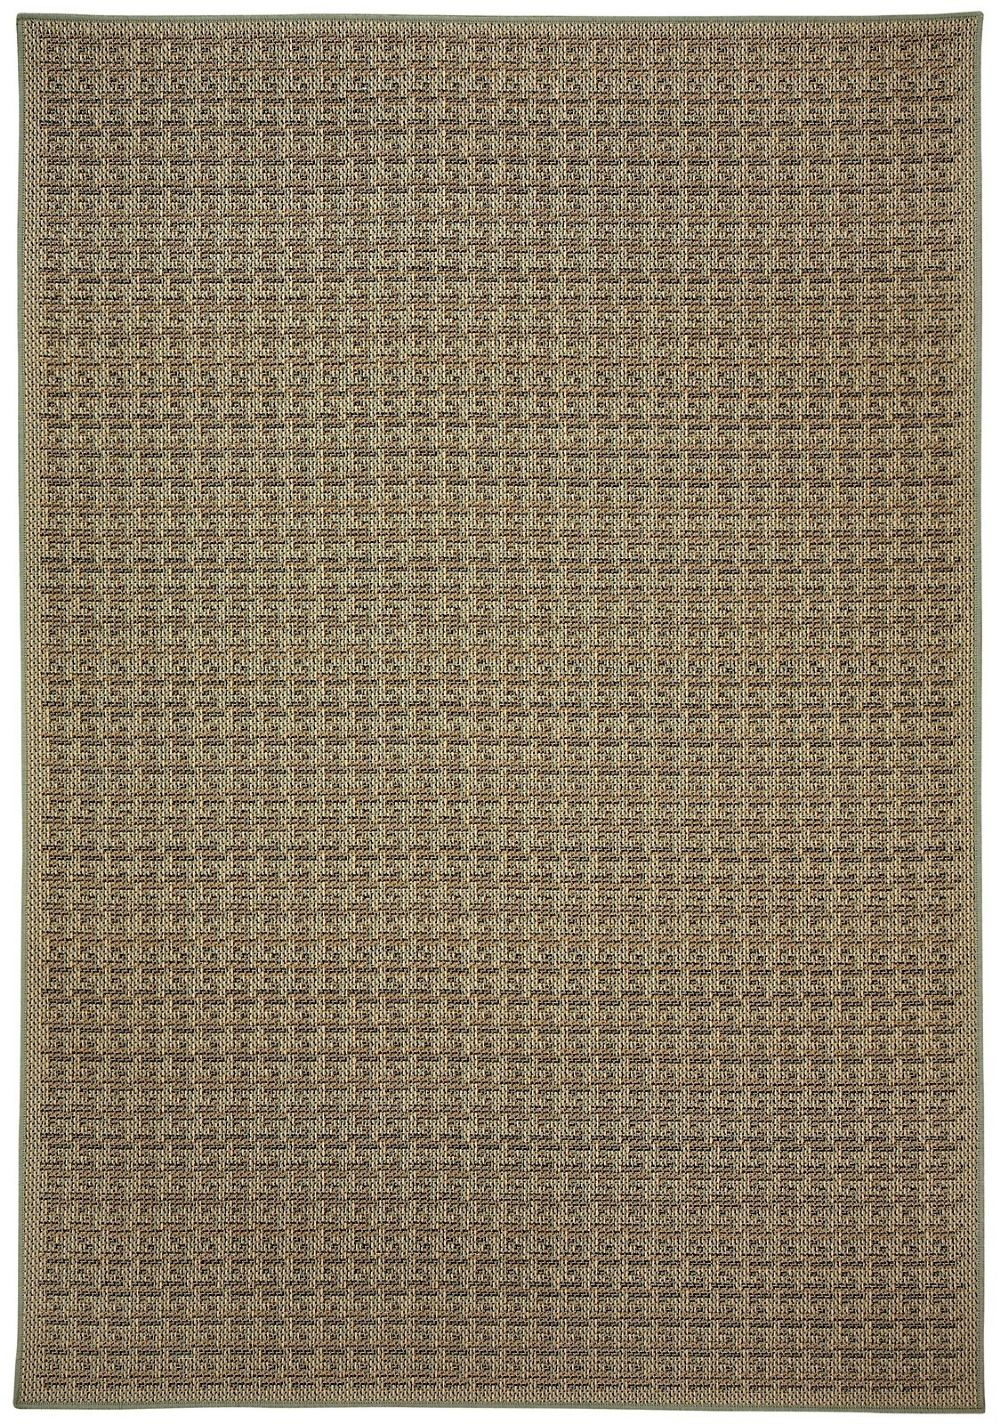 capel portia-houndstooth contemporary area rug collection